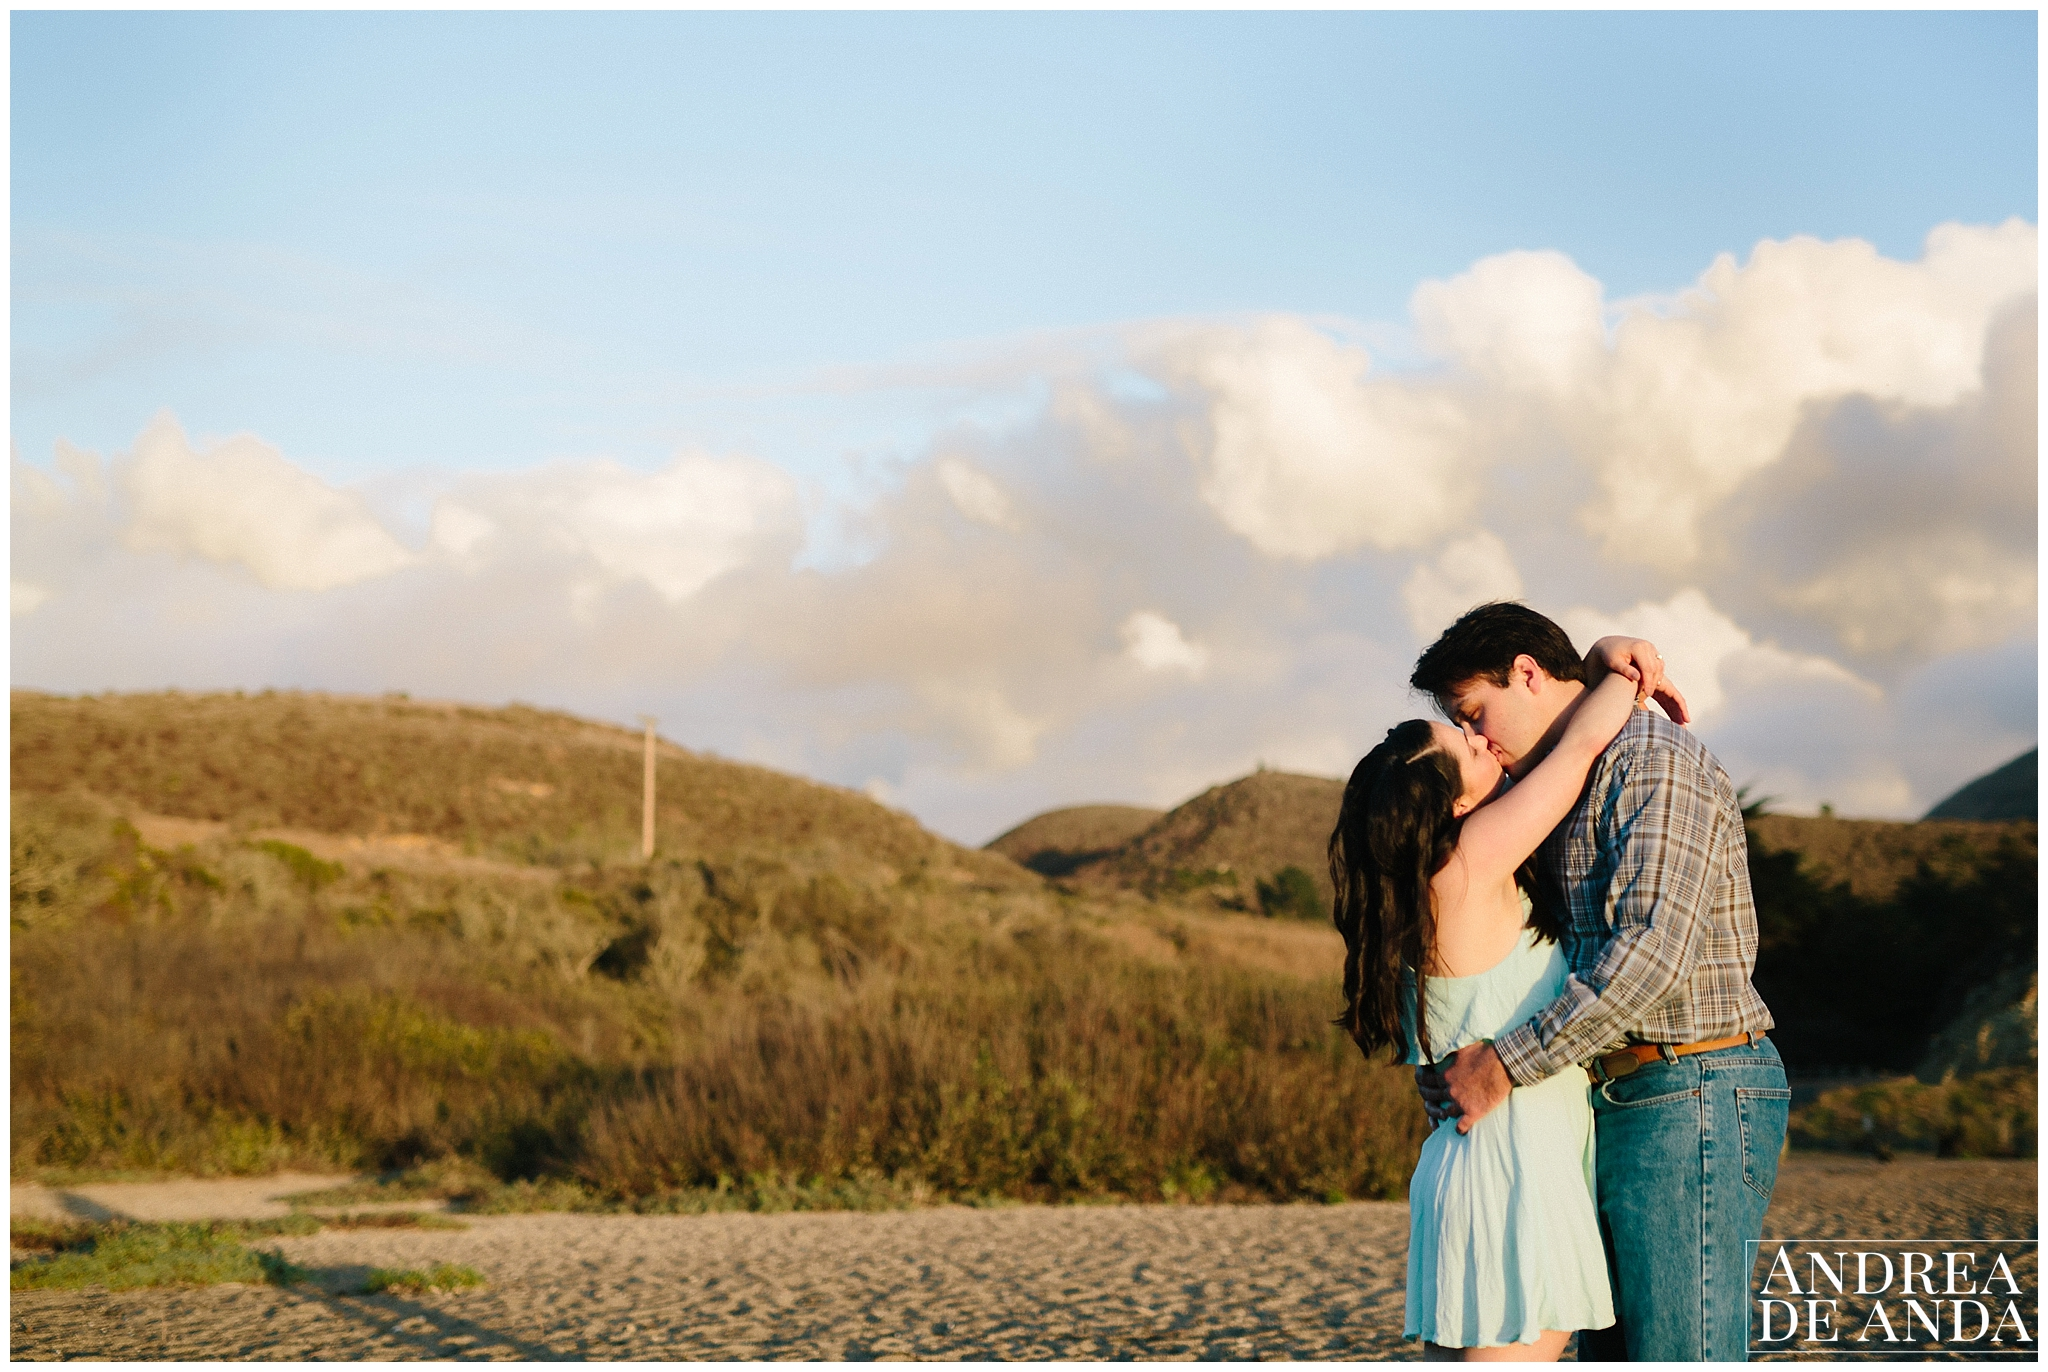 San Luis Obispo_Engagement session_Andrea de Anda Photography__0016.jpg